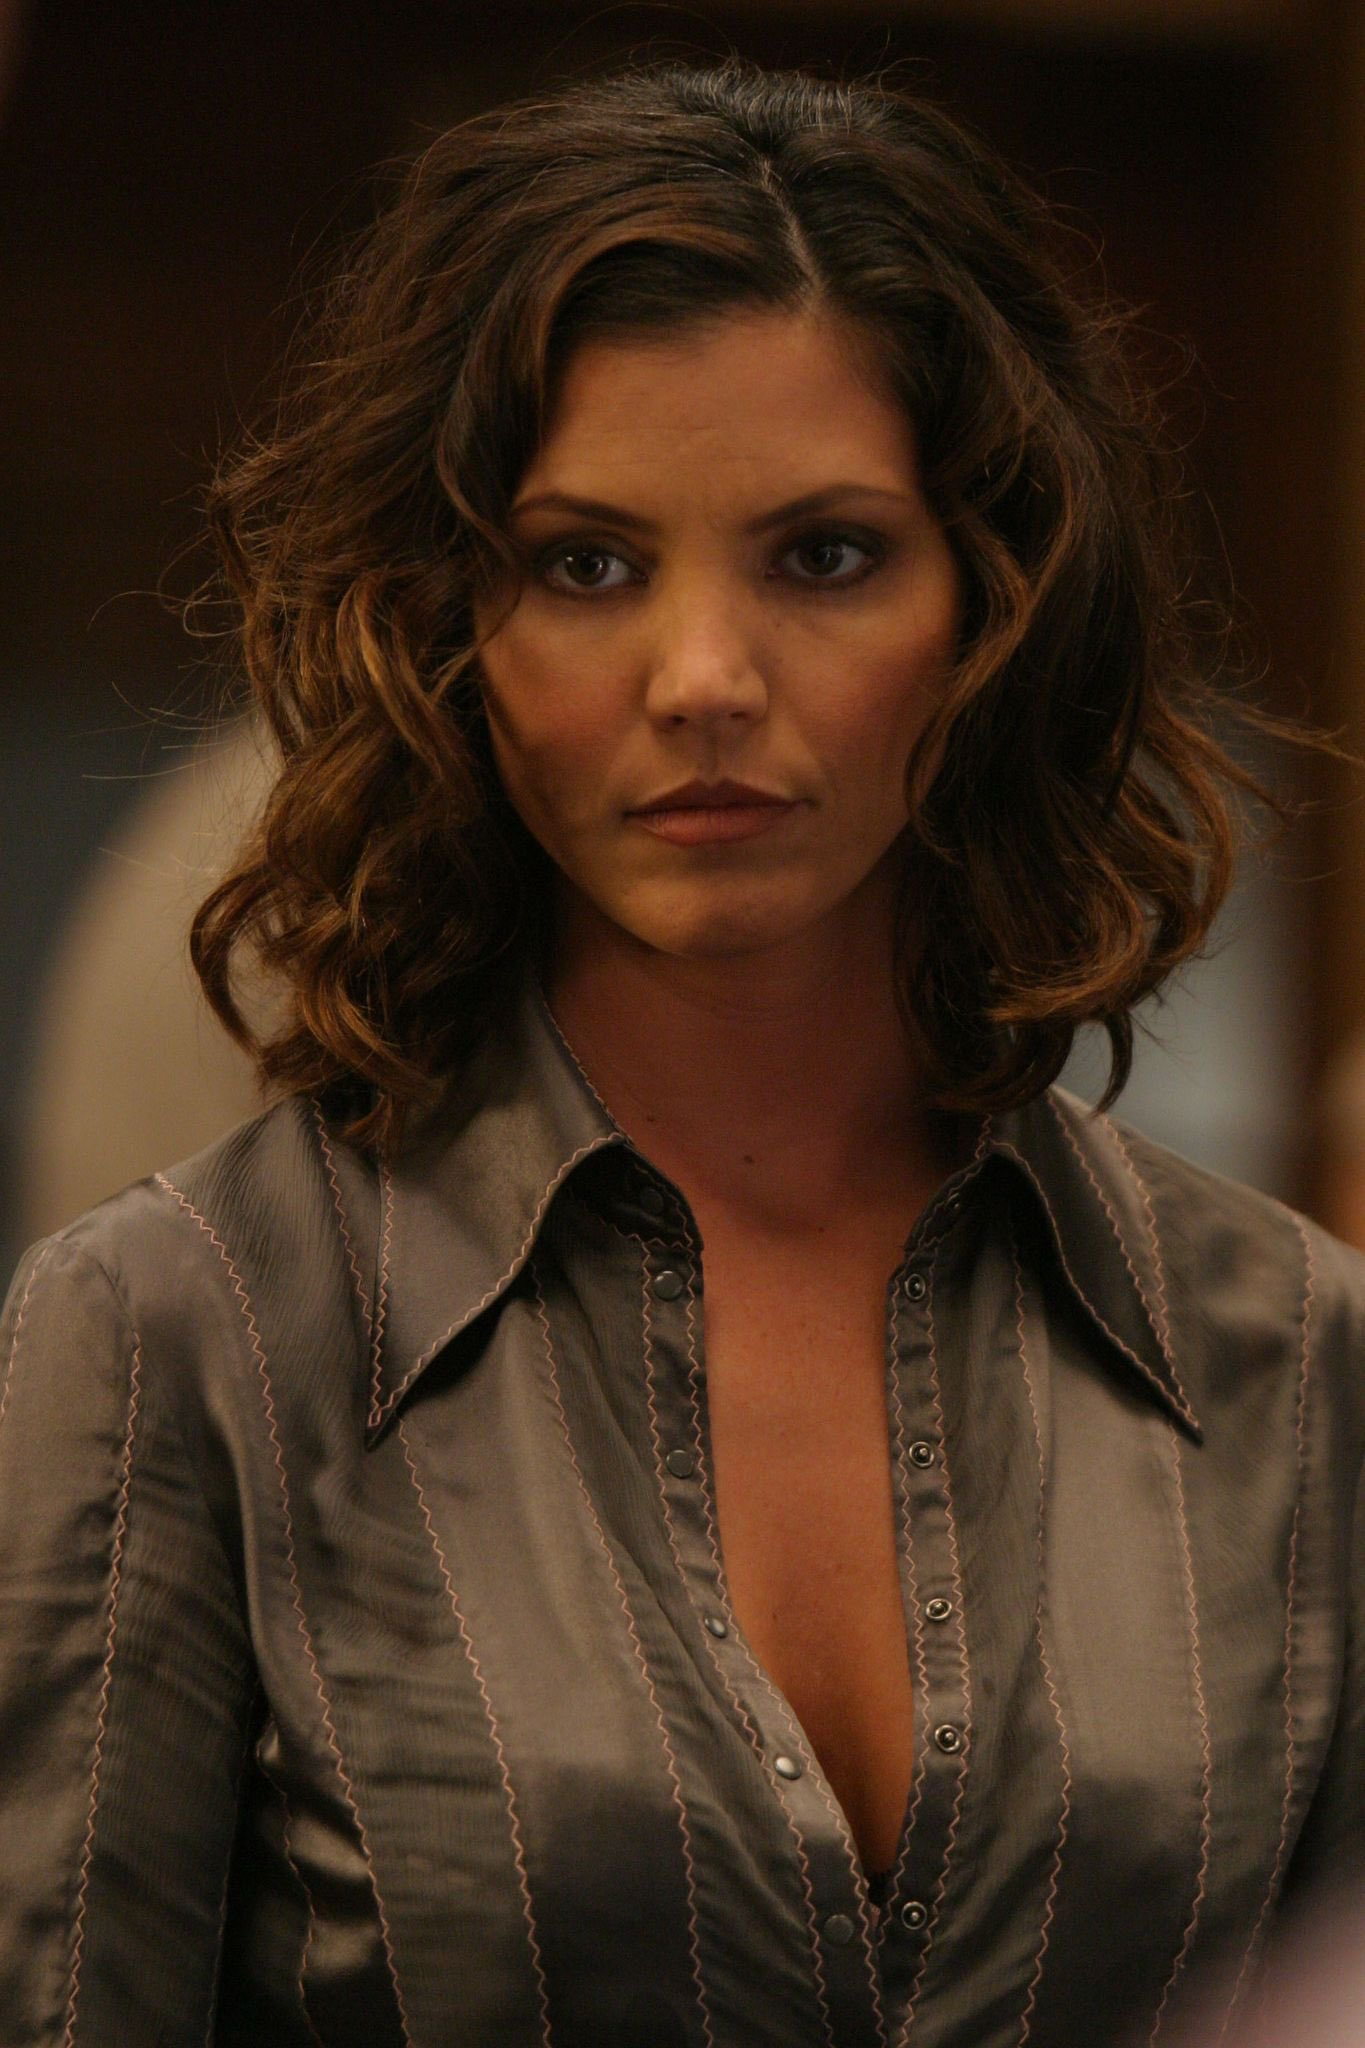 Personality ... MBTI Enneagram Cordelia ( Buffy the Vampire Slayer ) ... loading picture